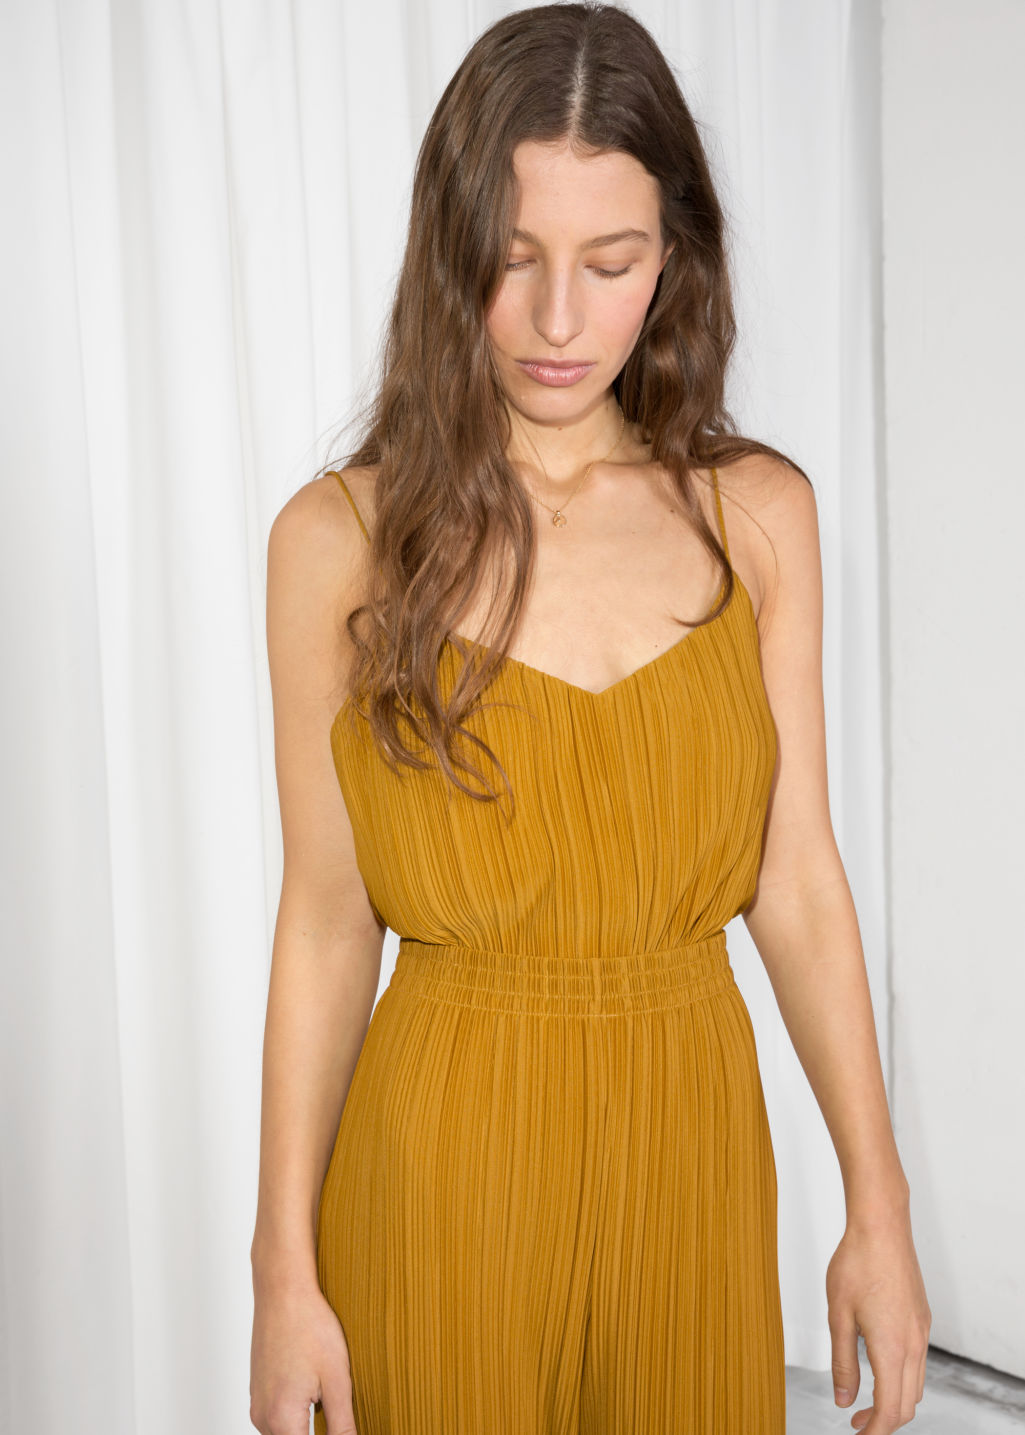 93bd6aba4f8c6e Pleated Plissé Tank Top - Mustard - Tanktops   Camisoles -   Other ...